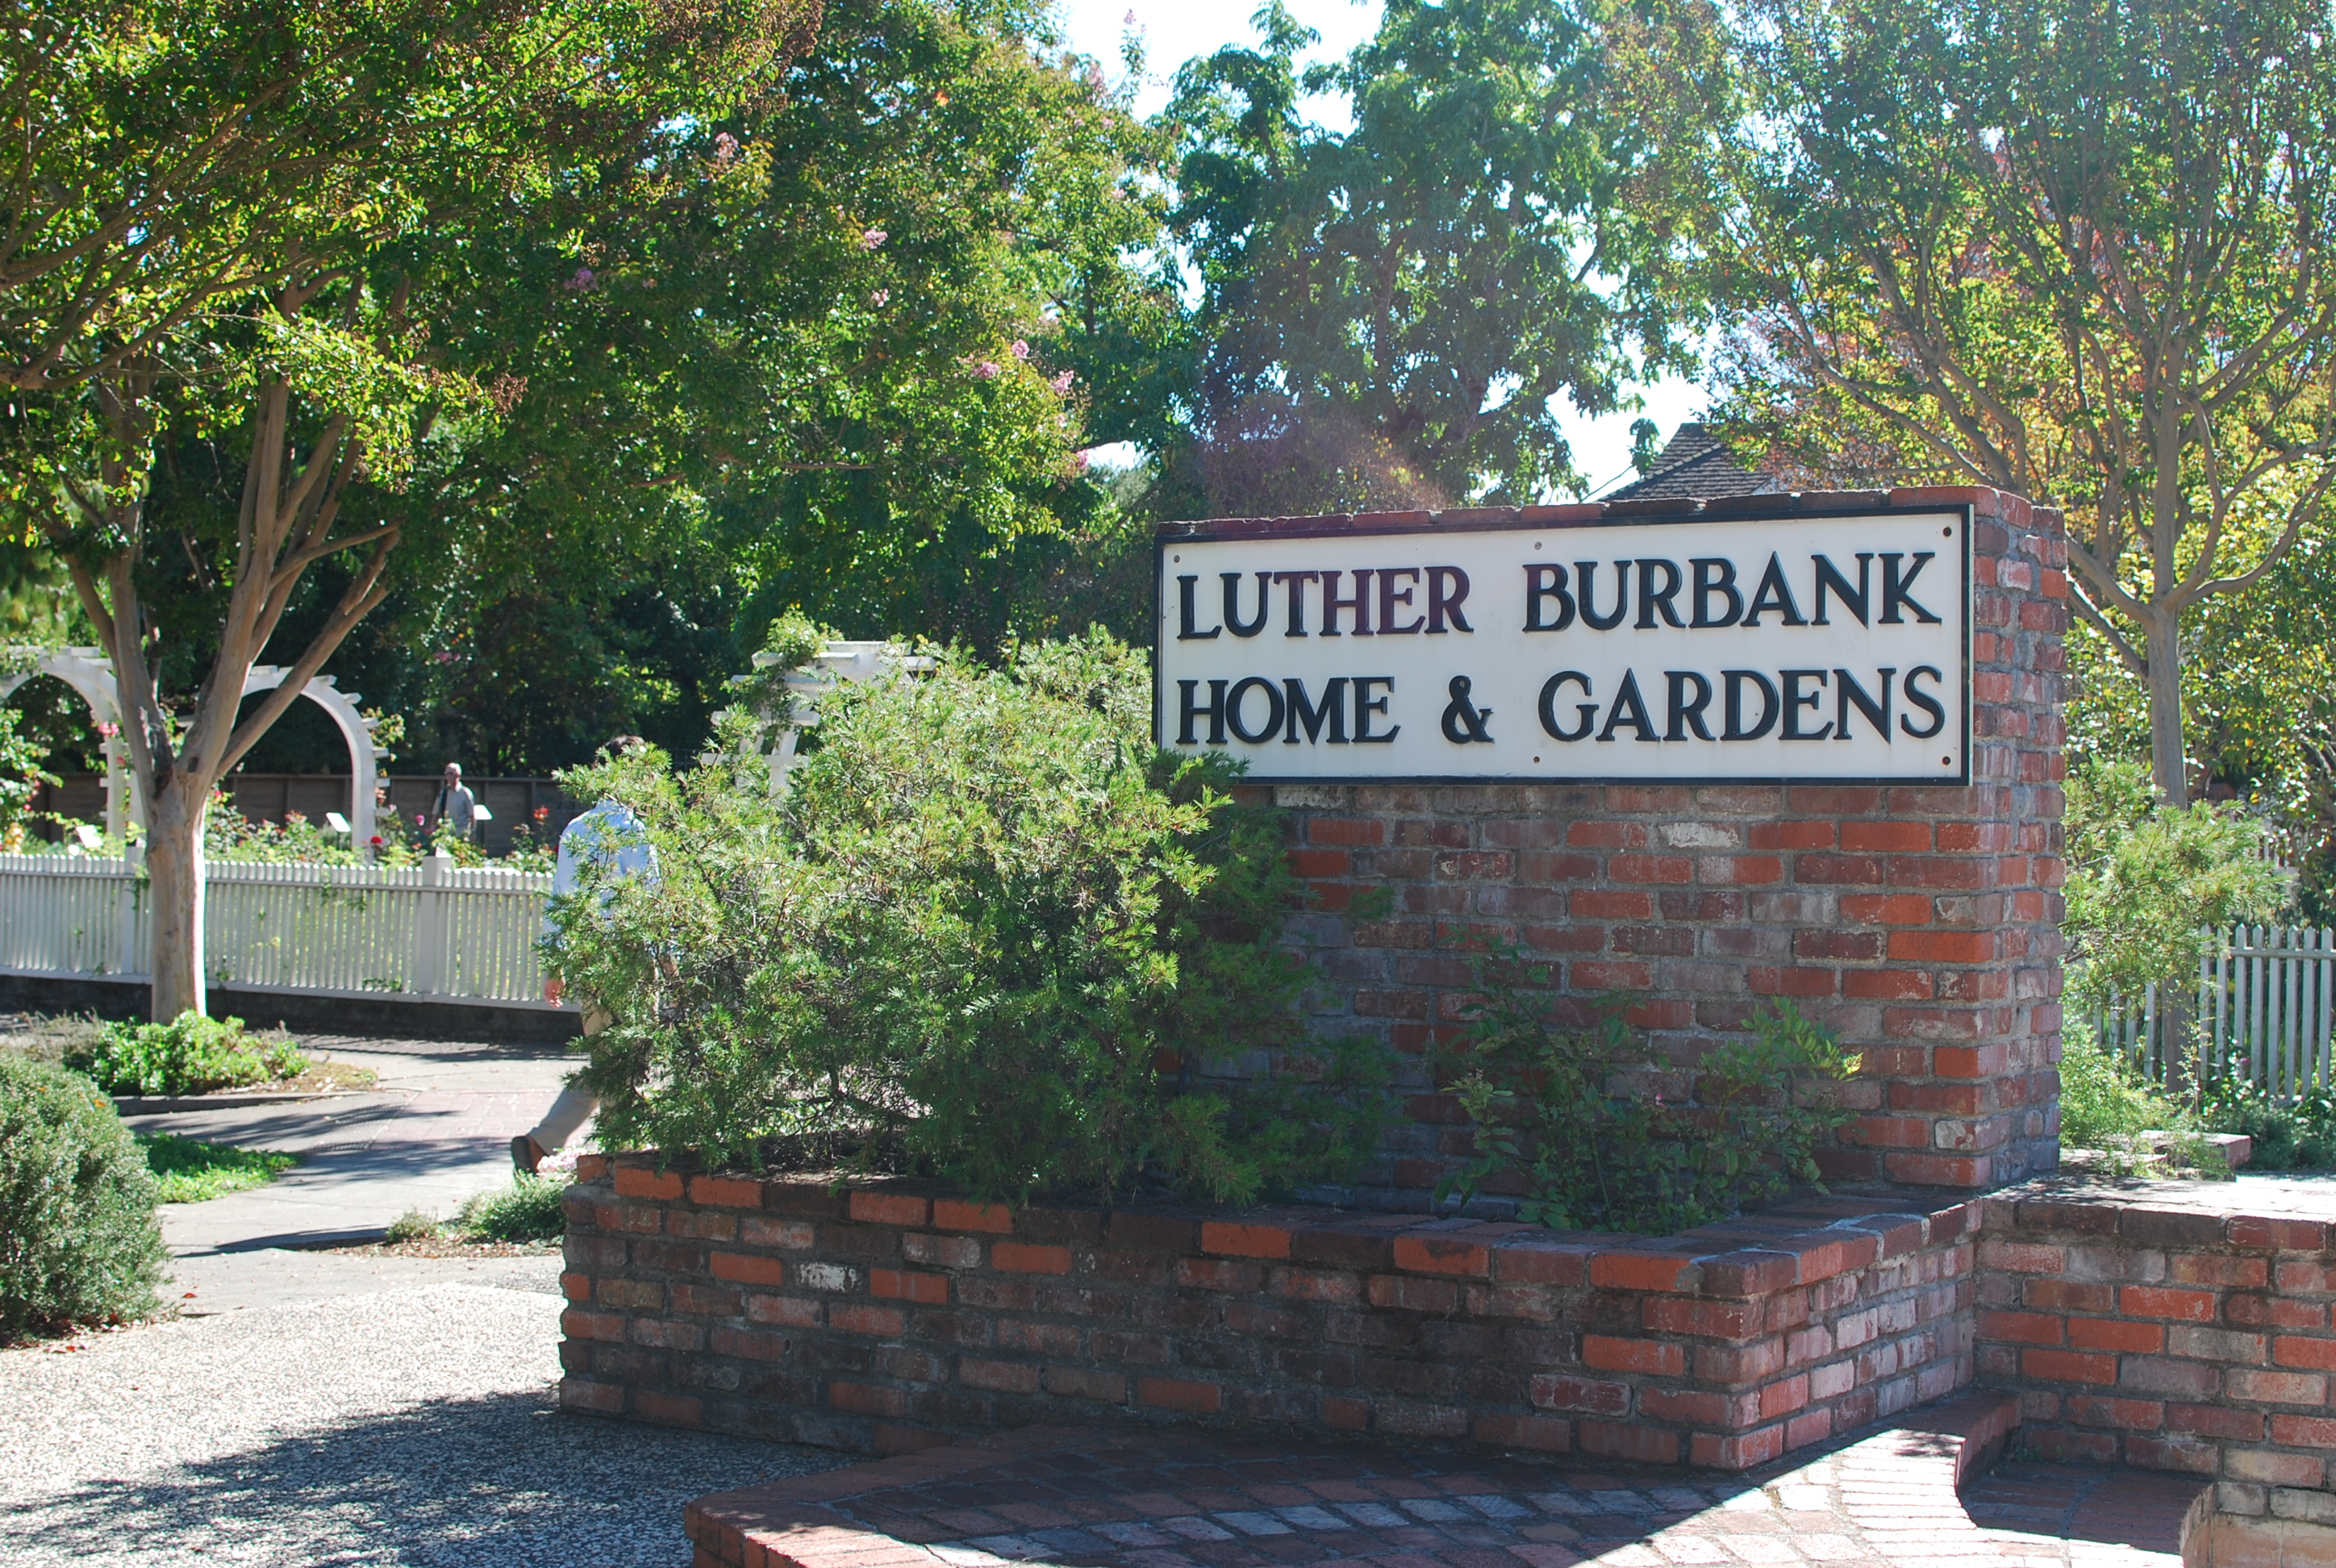 Luther Burbank Home Gardens Explore Cbcastro 39 S Photos On Flickr Photo Sharing